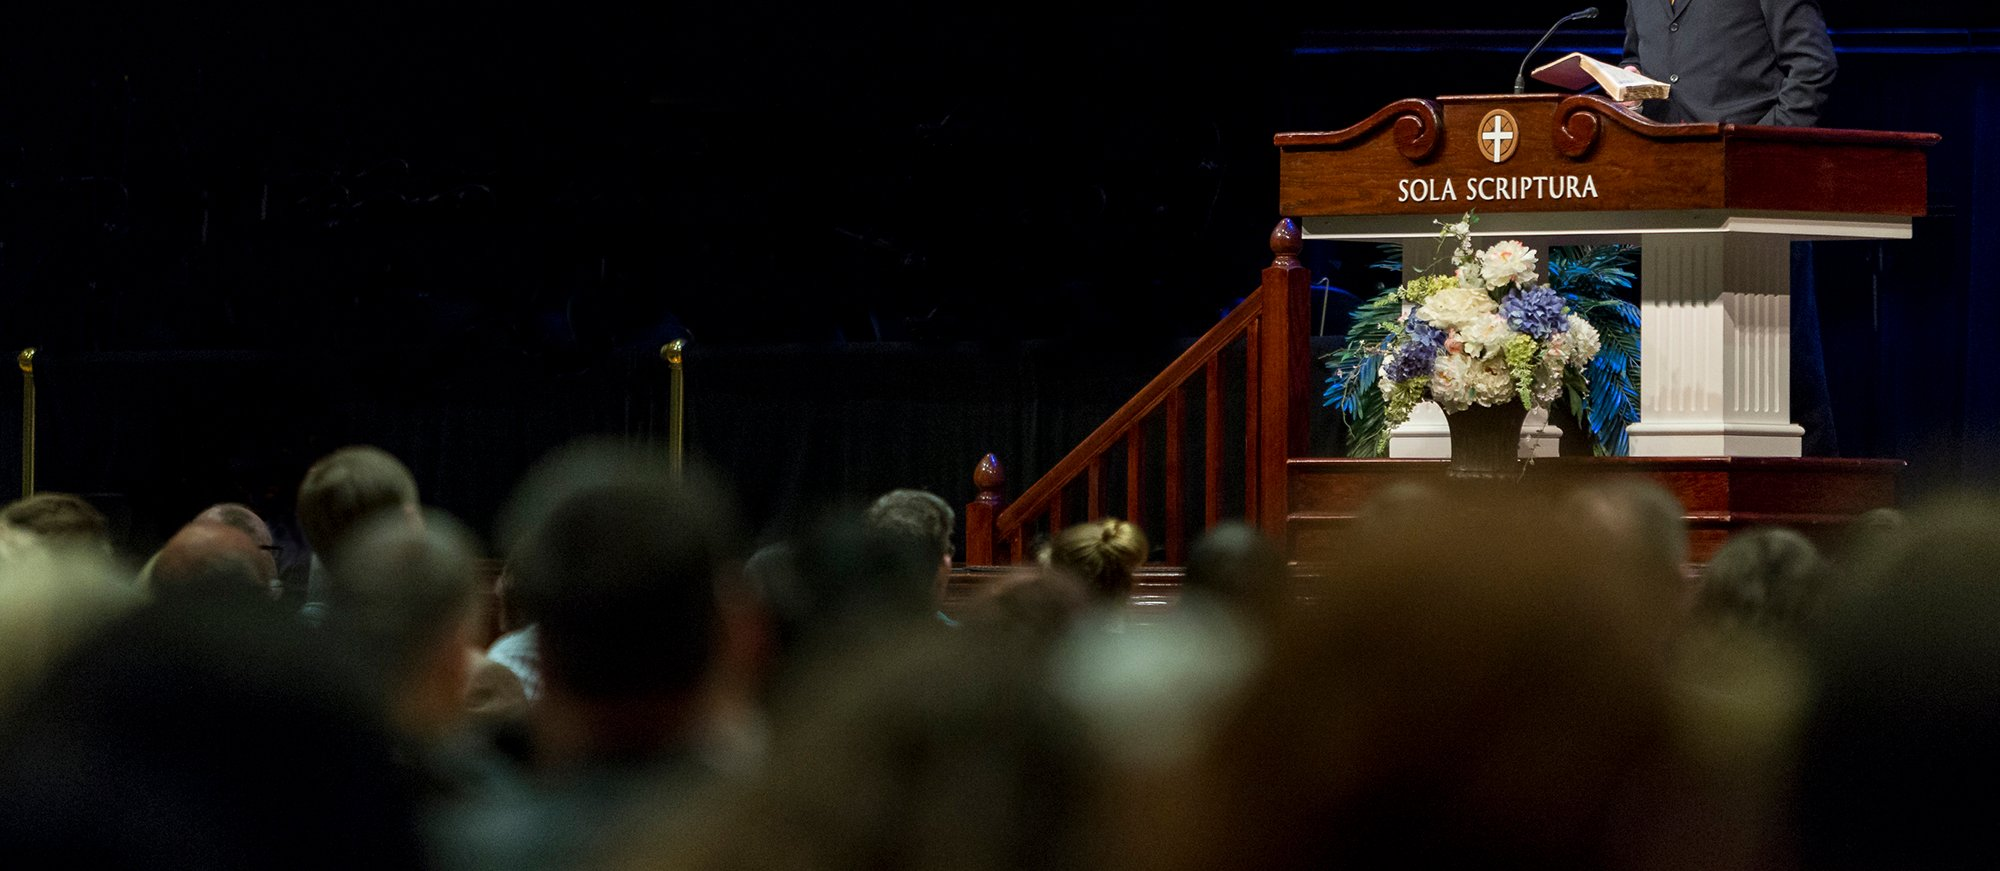 Church pulpit with sola scriptura inscribed and pastor preaching to conference